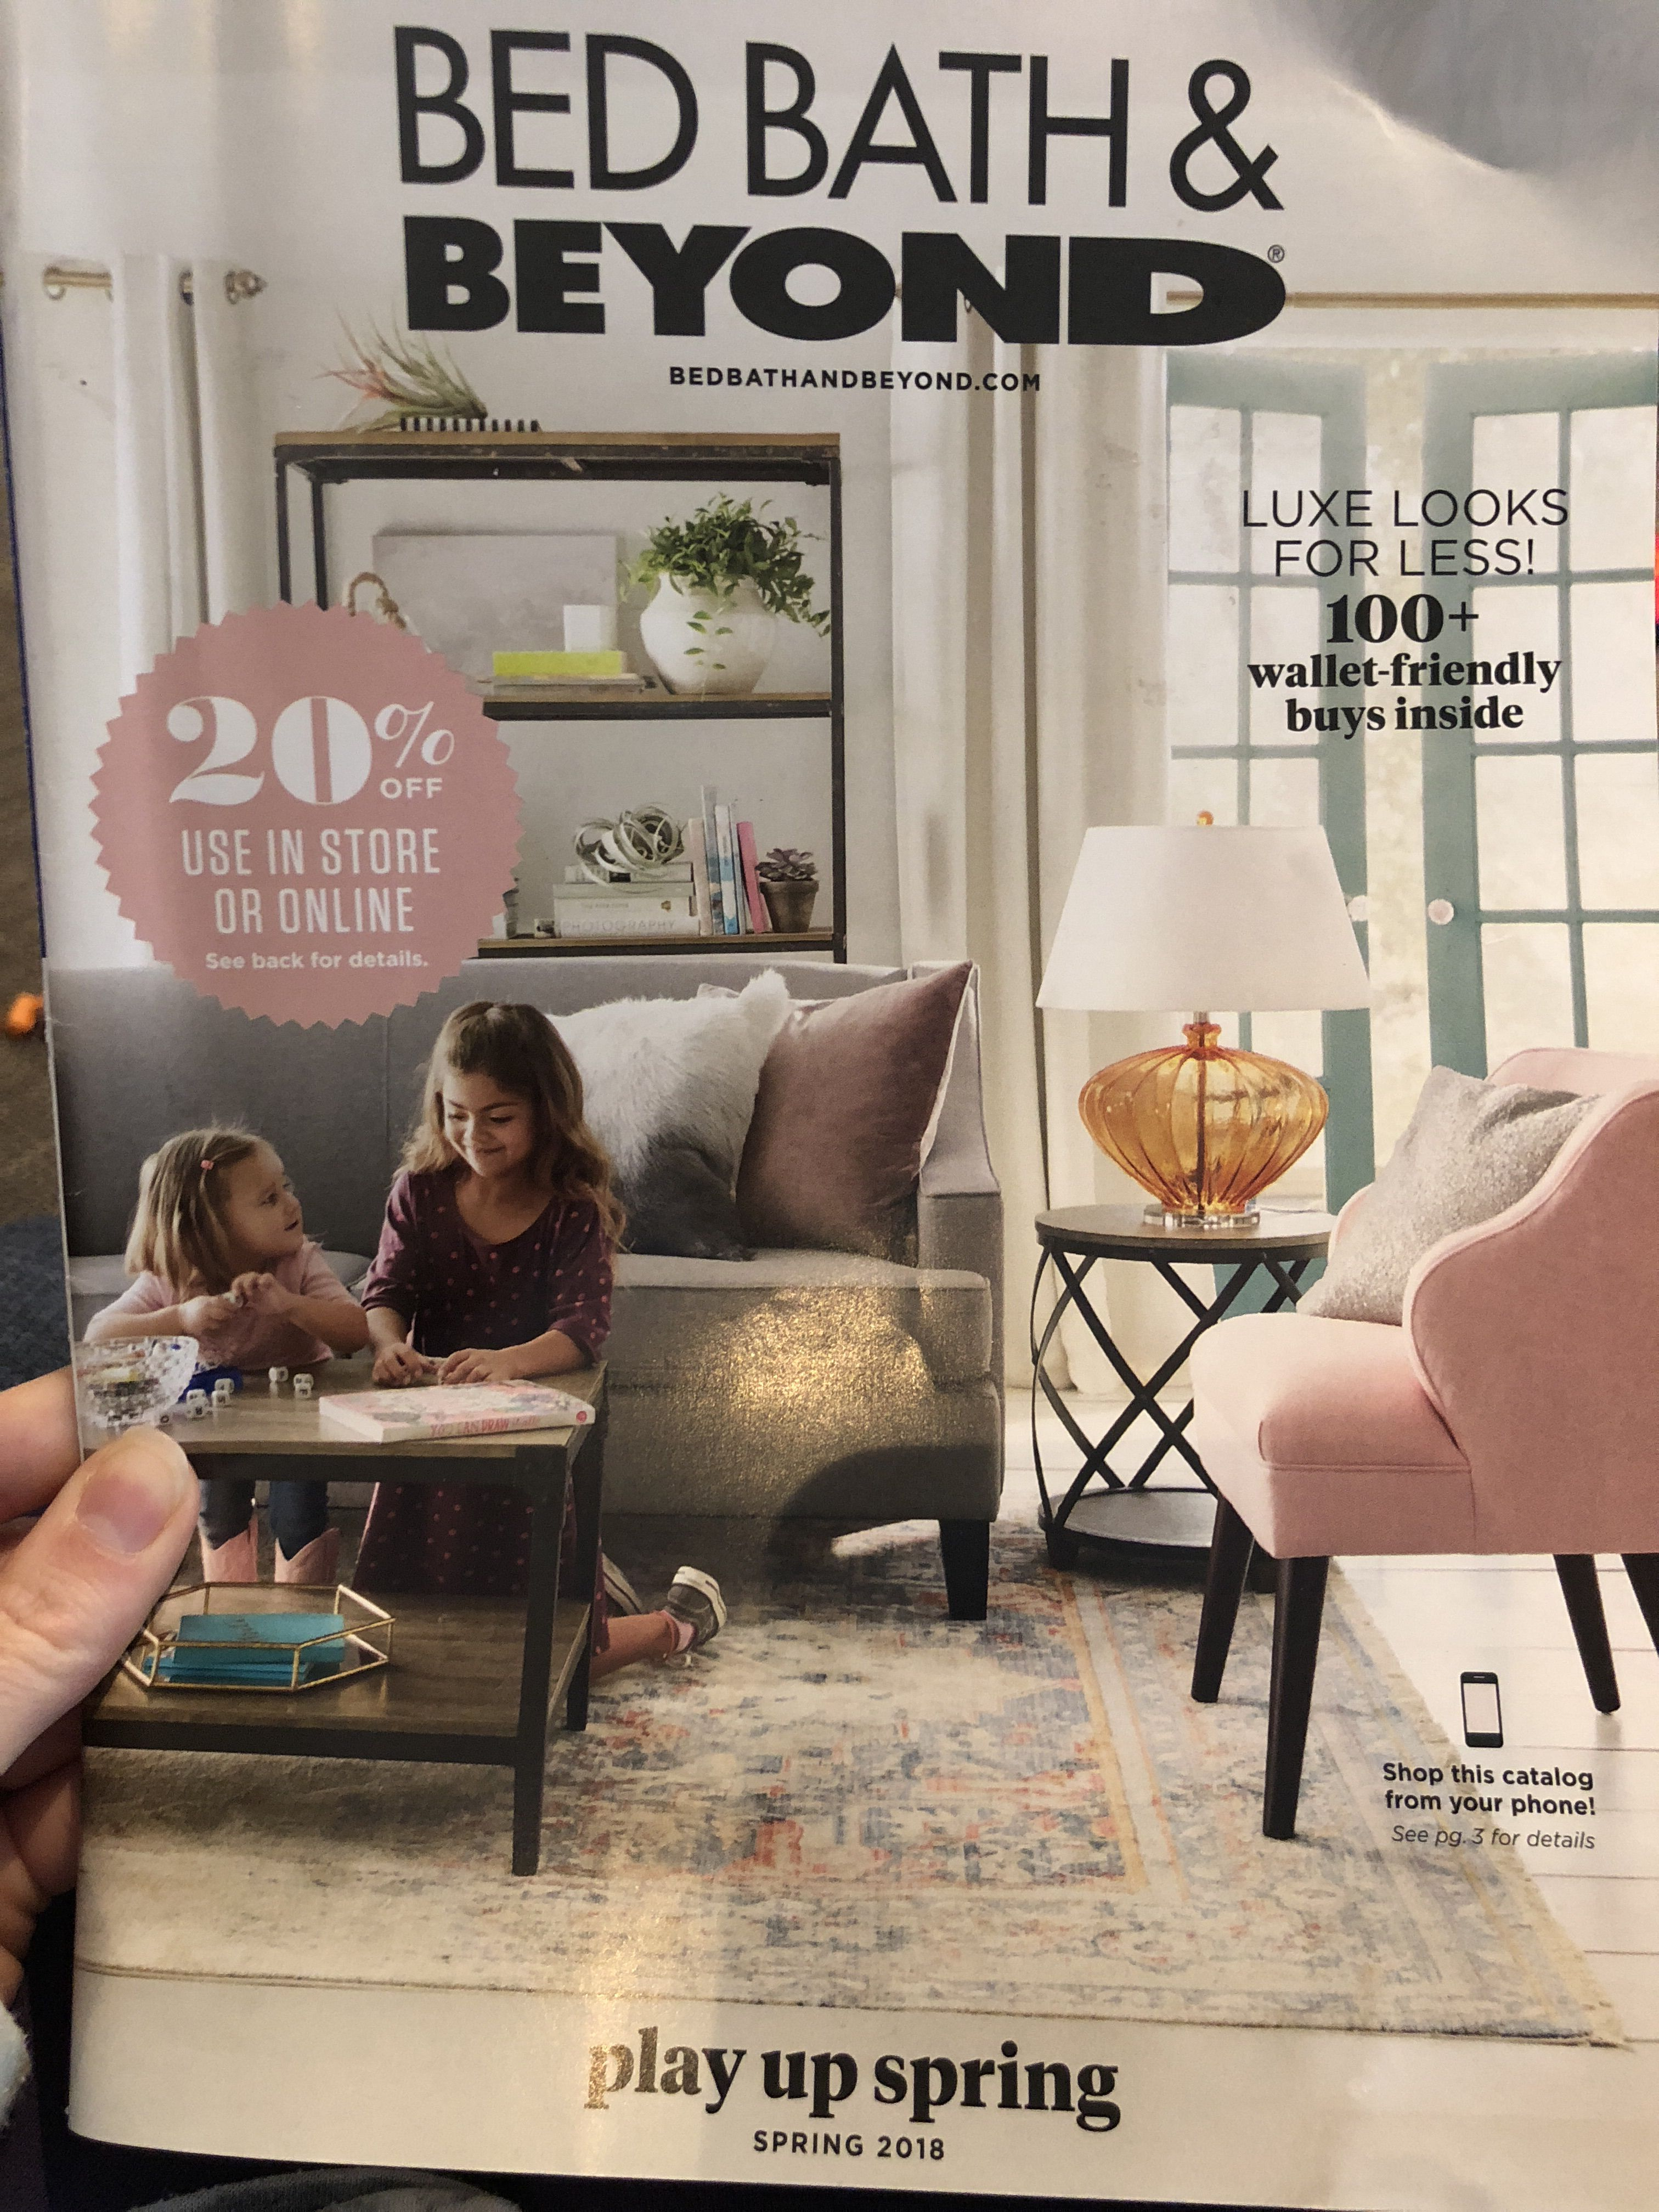 Great Options And Ideas In This New Catalog For Bed Bath Beyond Check It Out Home Decor Design